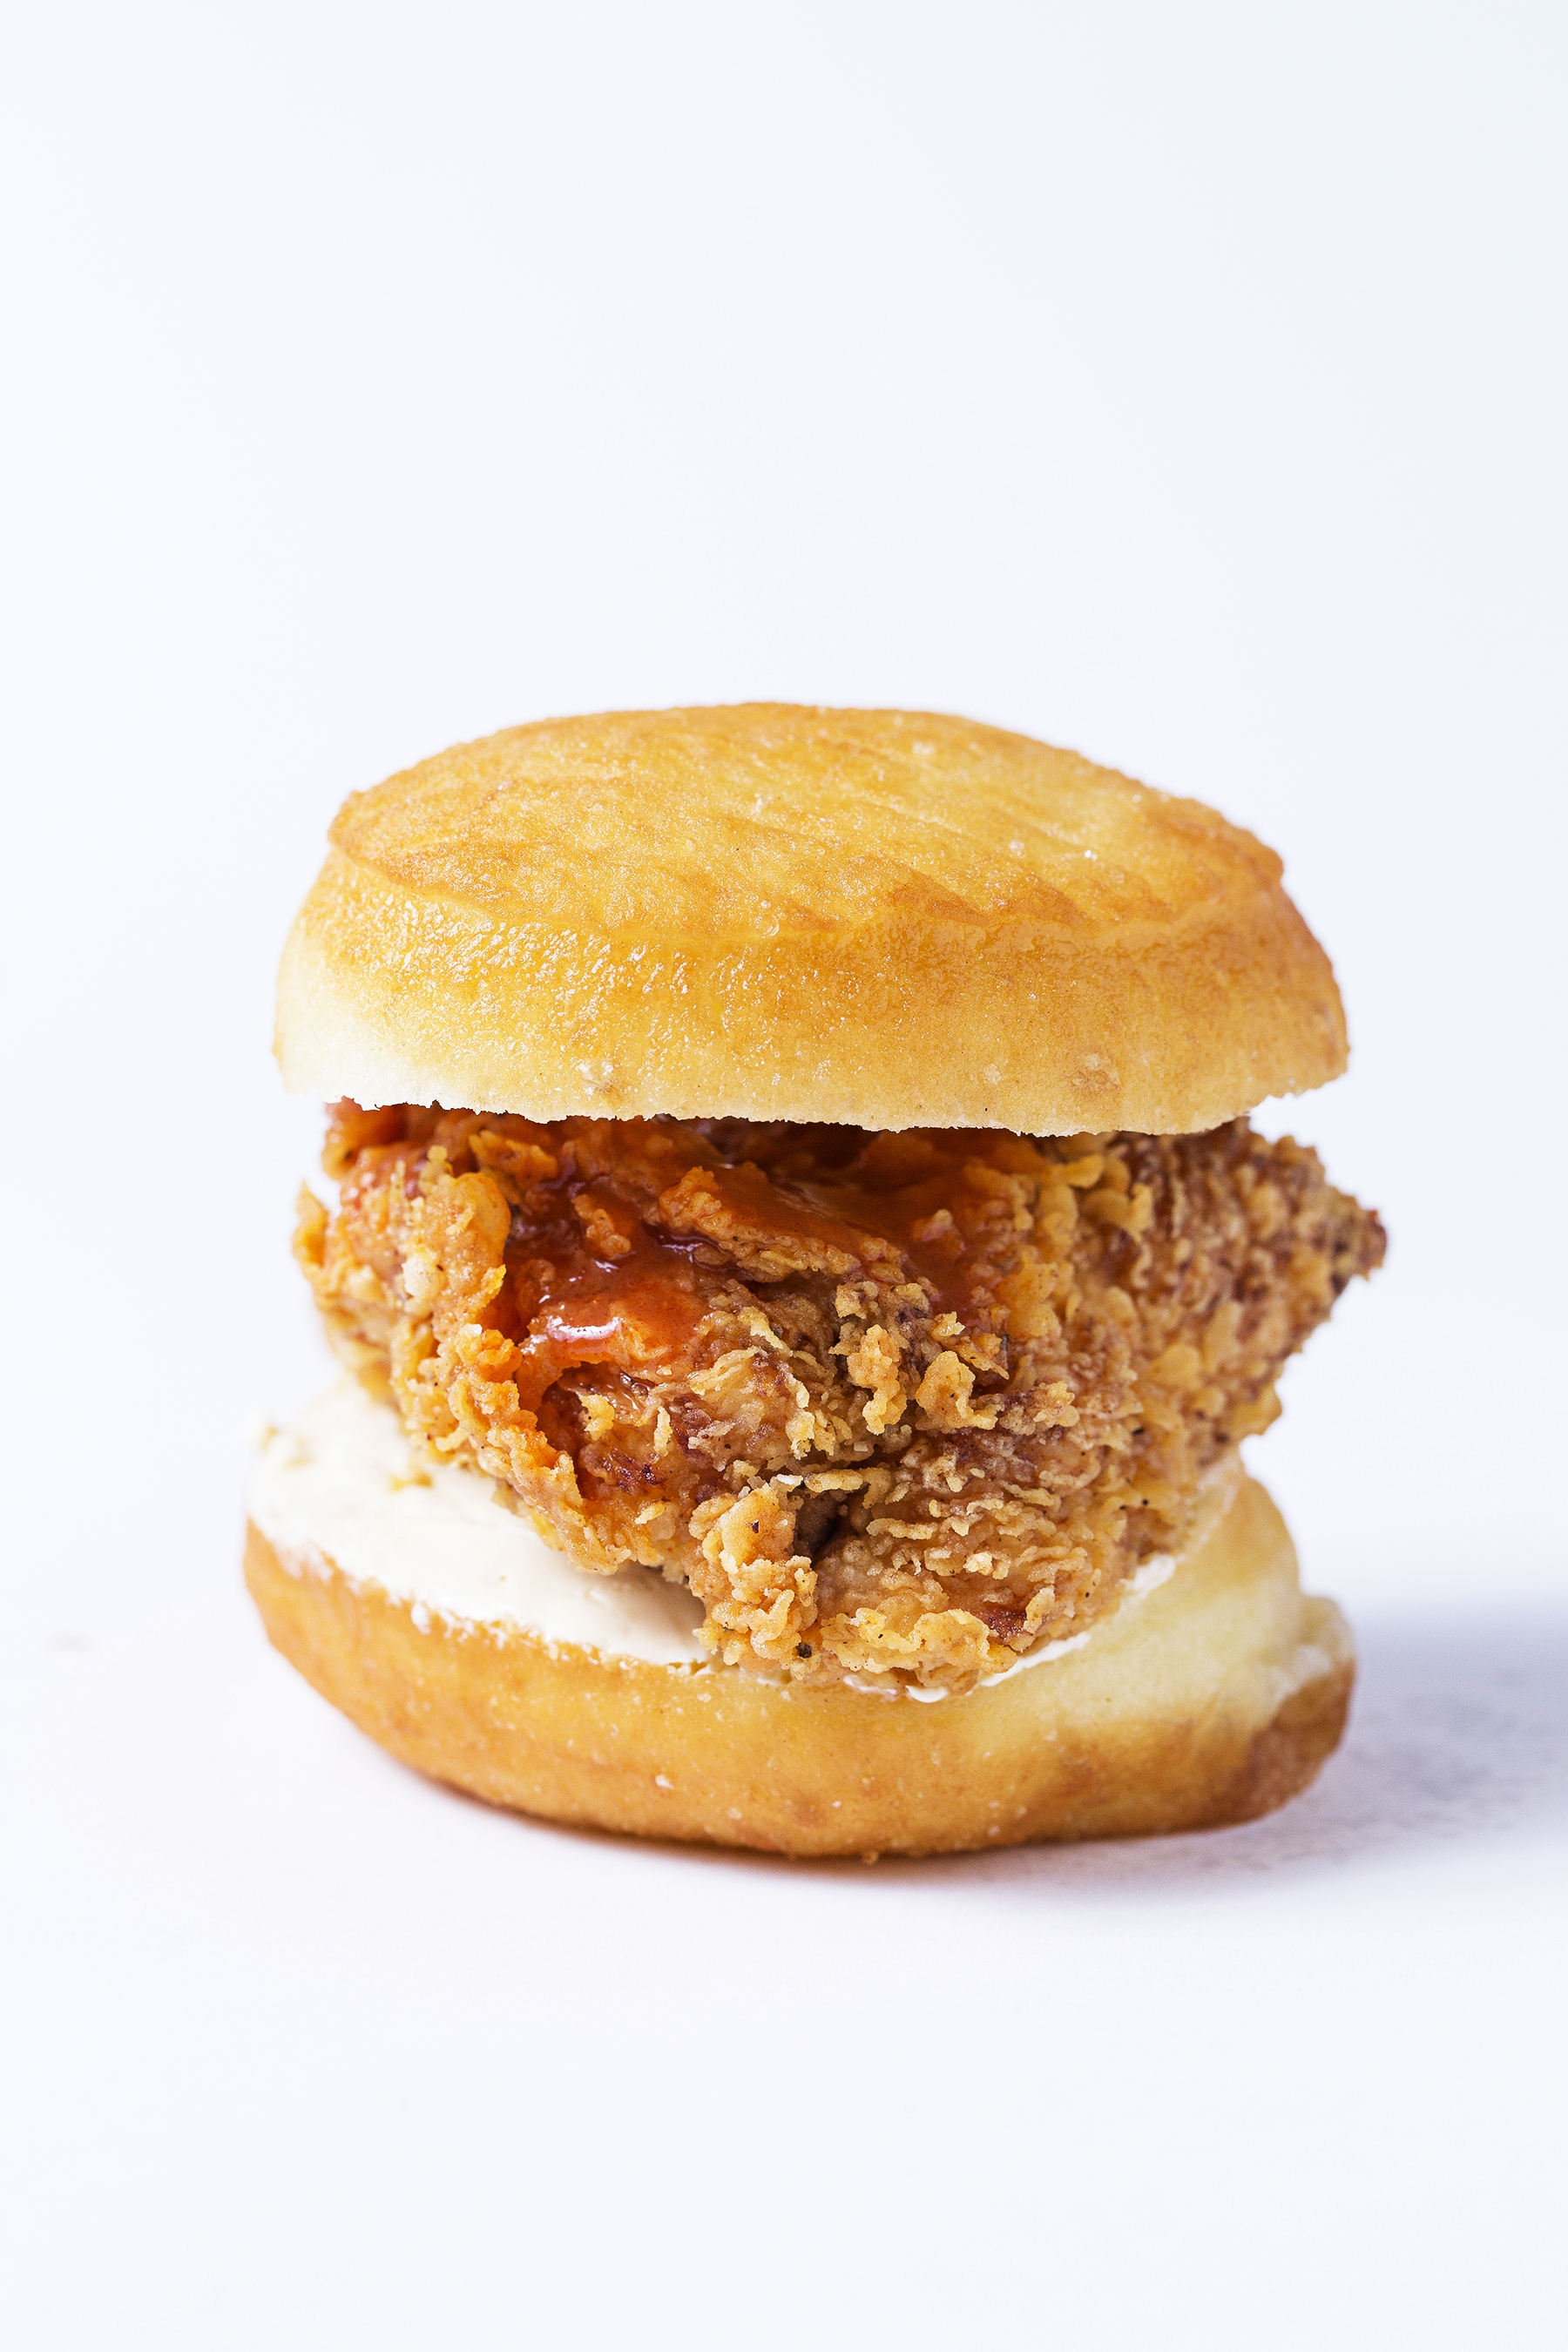 What the cluck! Diners peckish for fried chicken sandwiches have a clutch of blue ribbon options. These six will help you get your fowl fix. (Image: Scott Suchman)